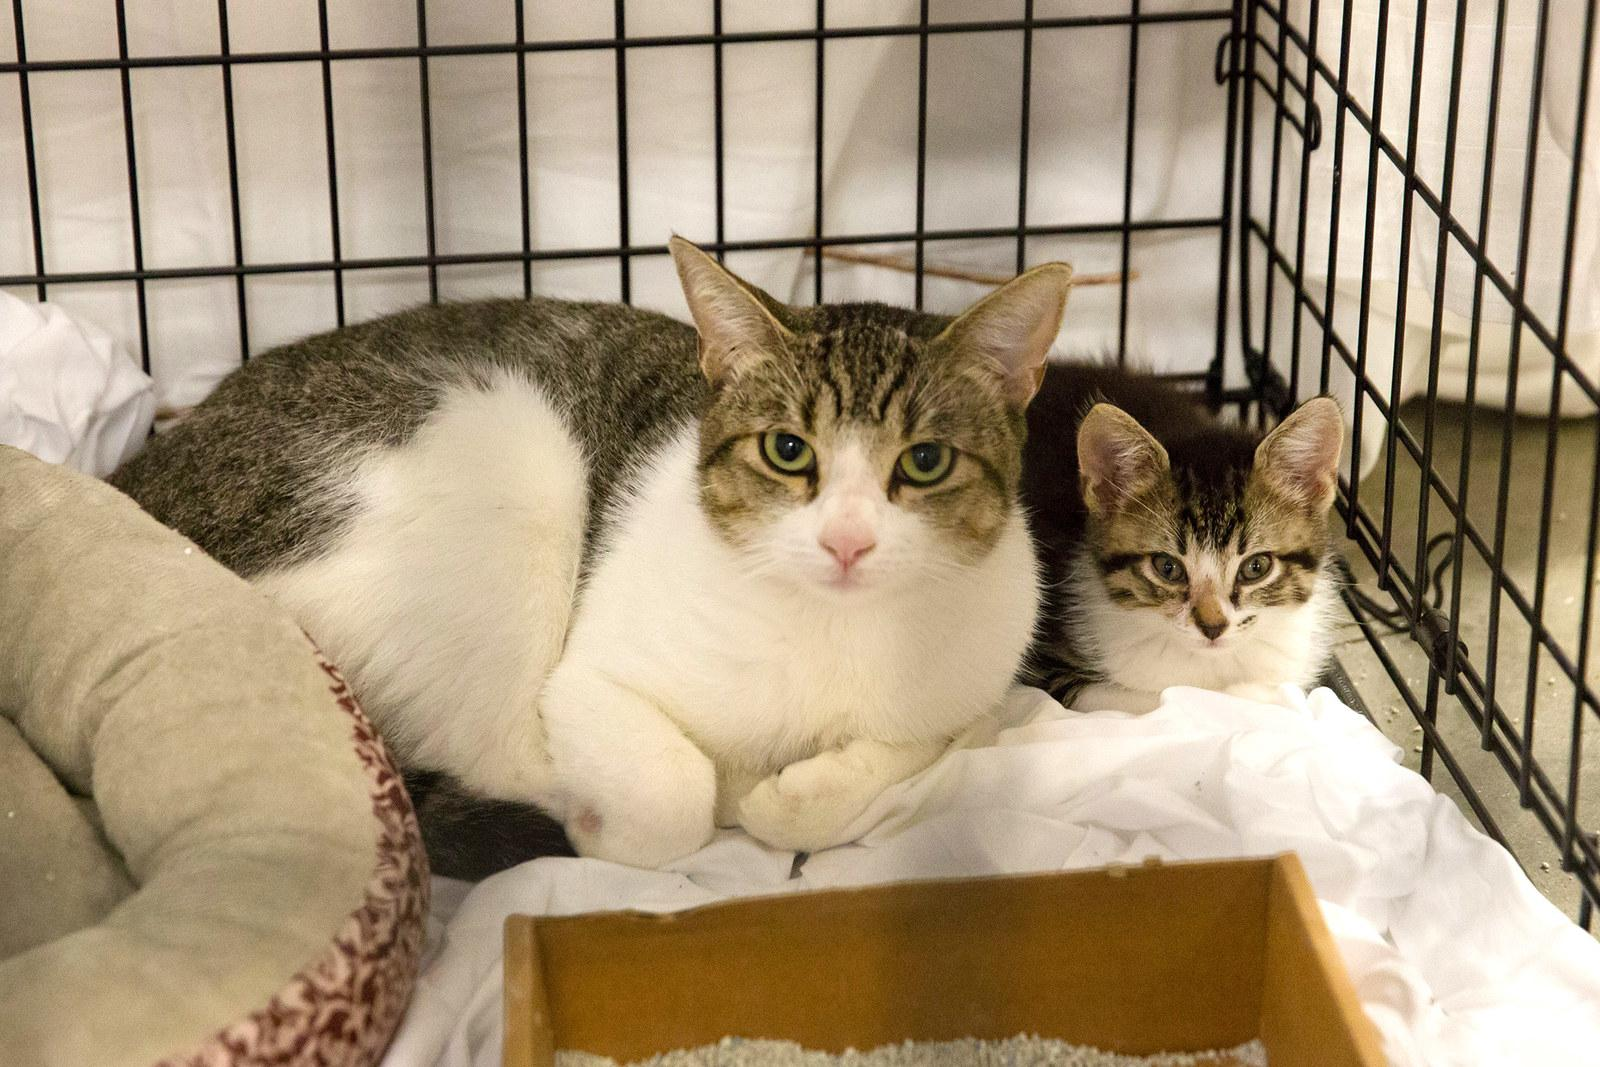 Cats in the Delco Center in Austin on Aug. 27.